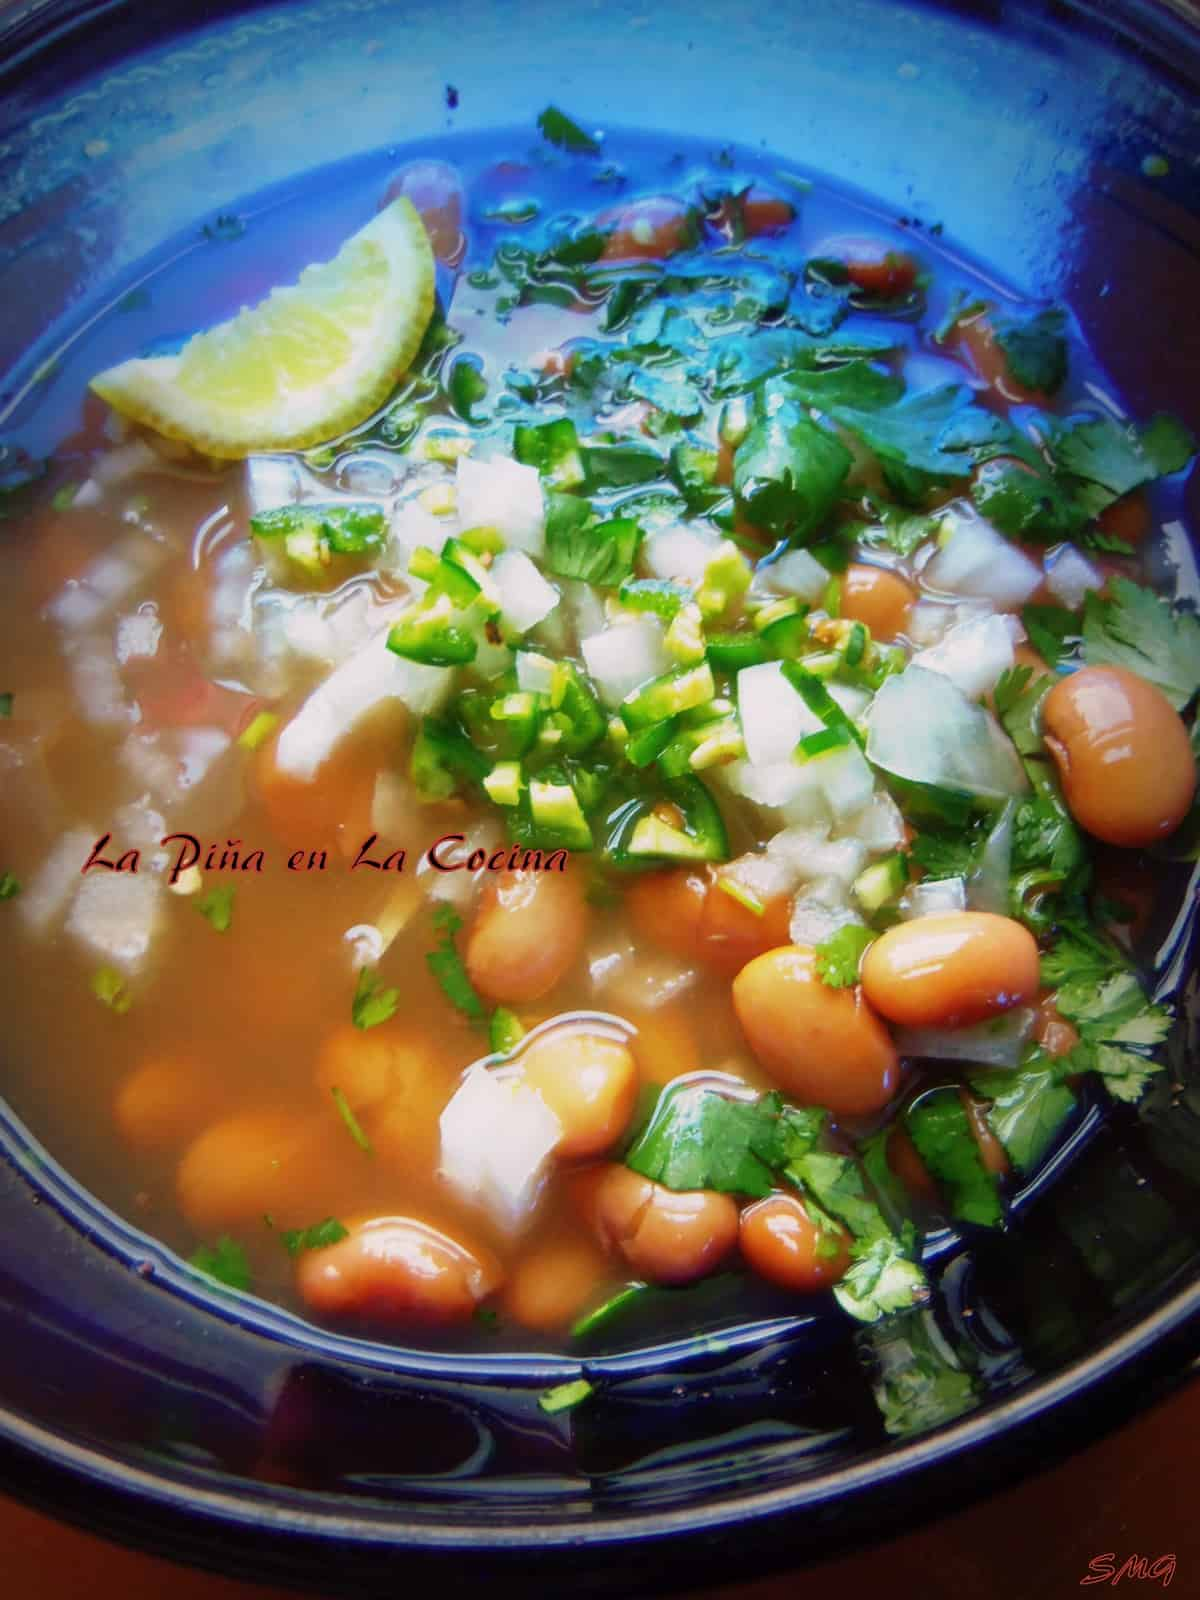 My favorite way to enjoy Frijoles de Olla is in their own broth with diced onion, chile, cilantro and lemon